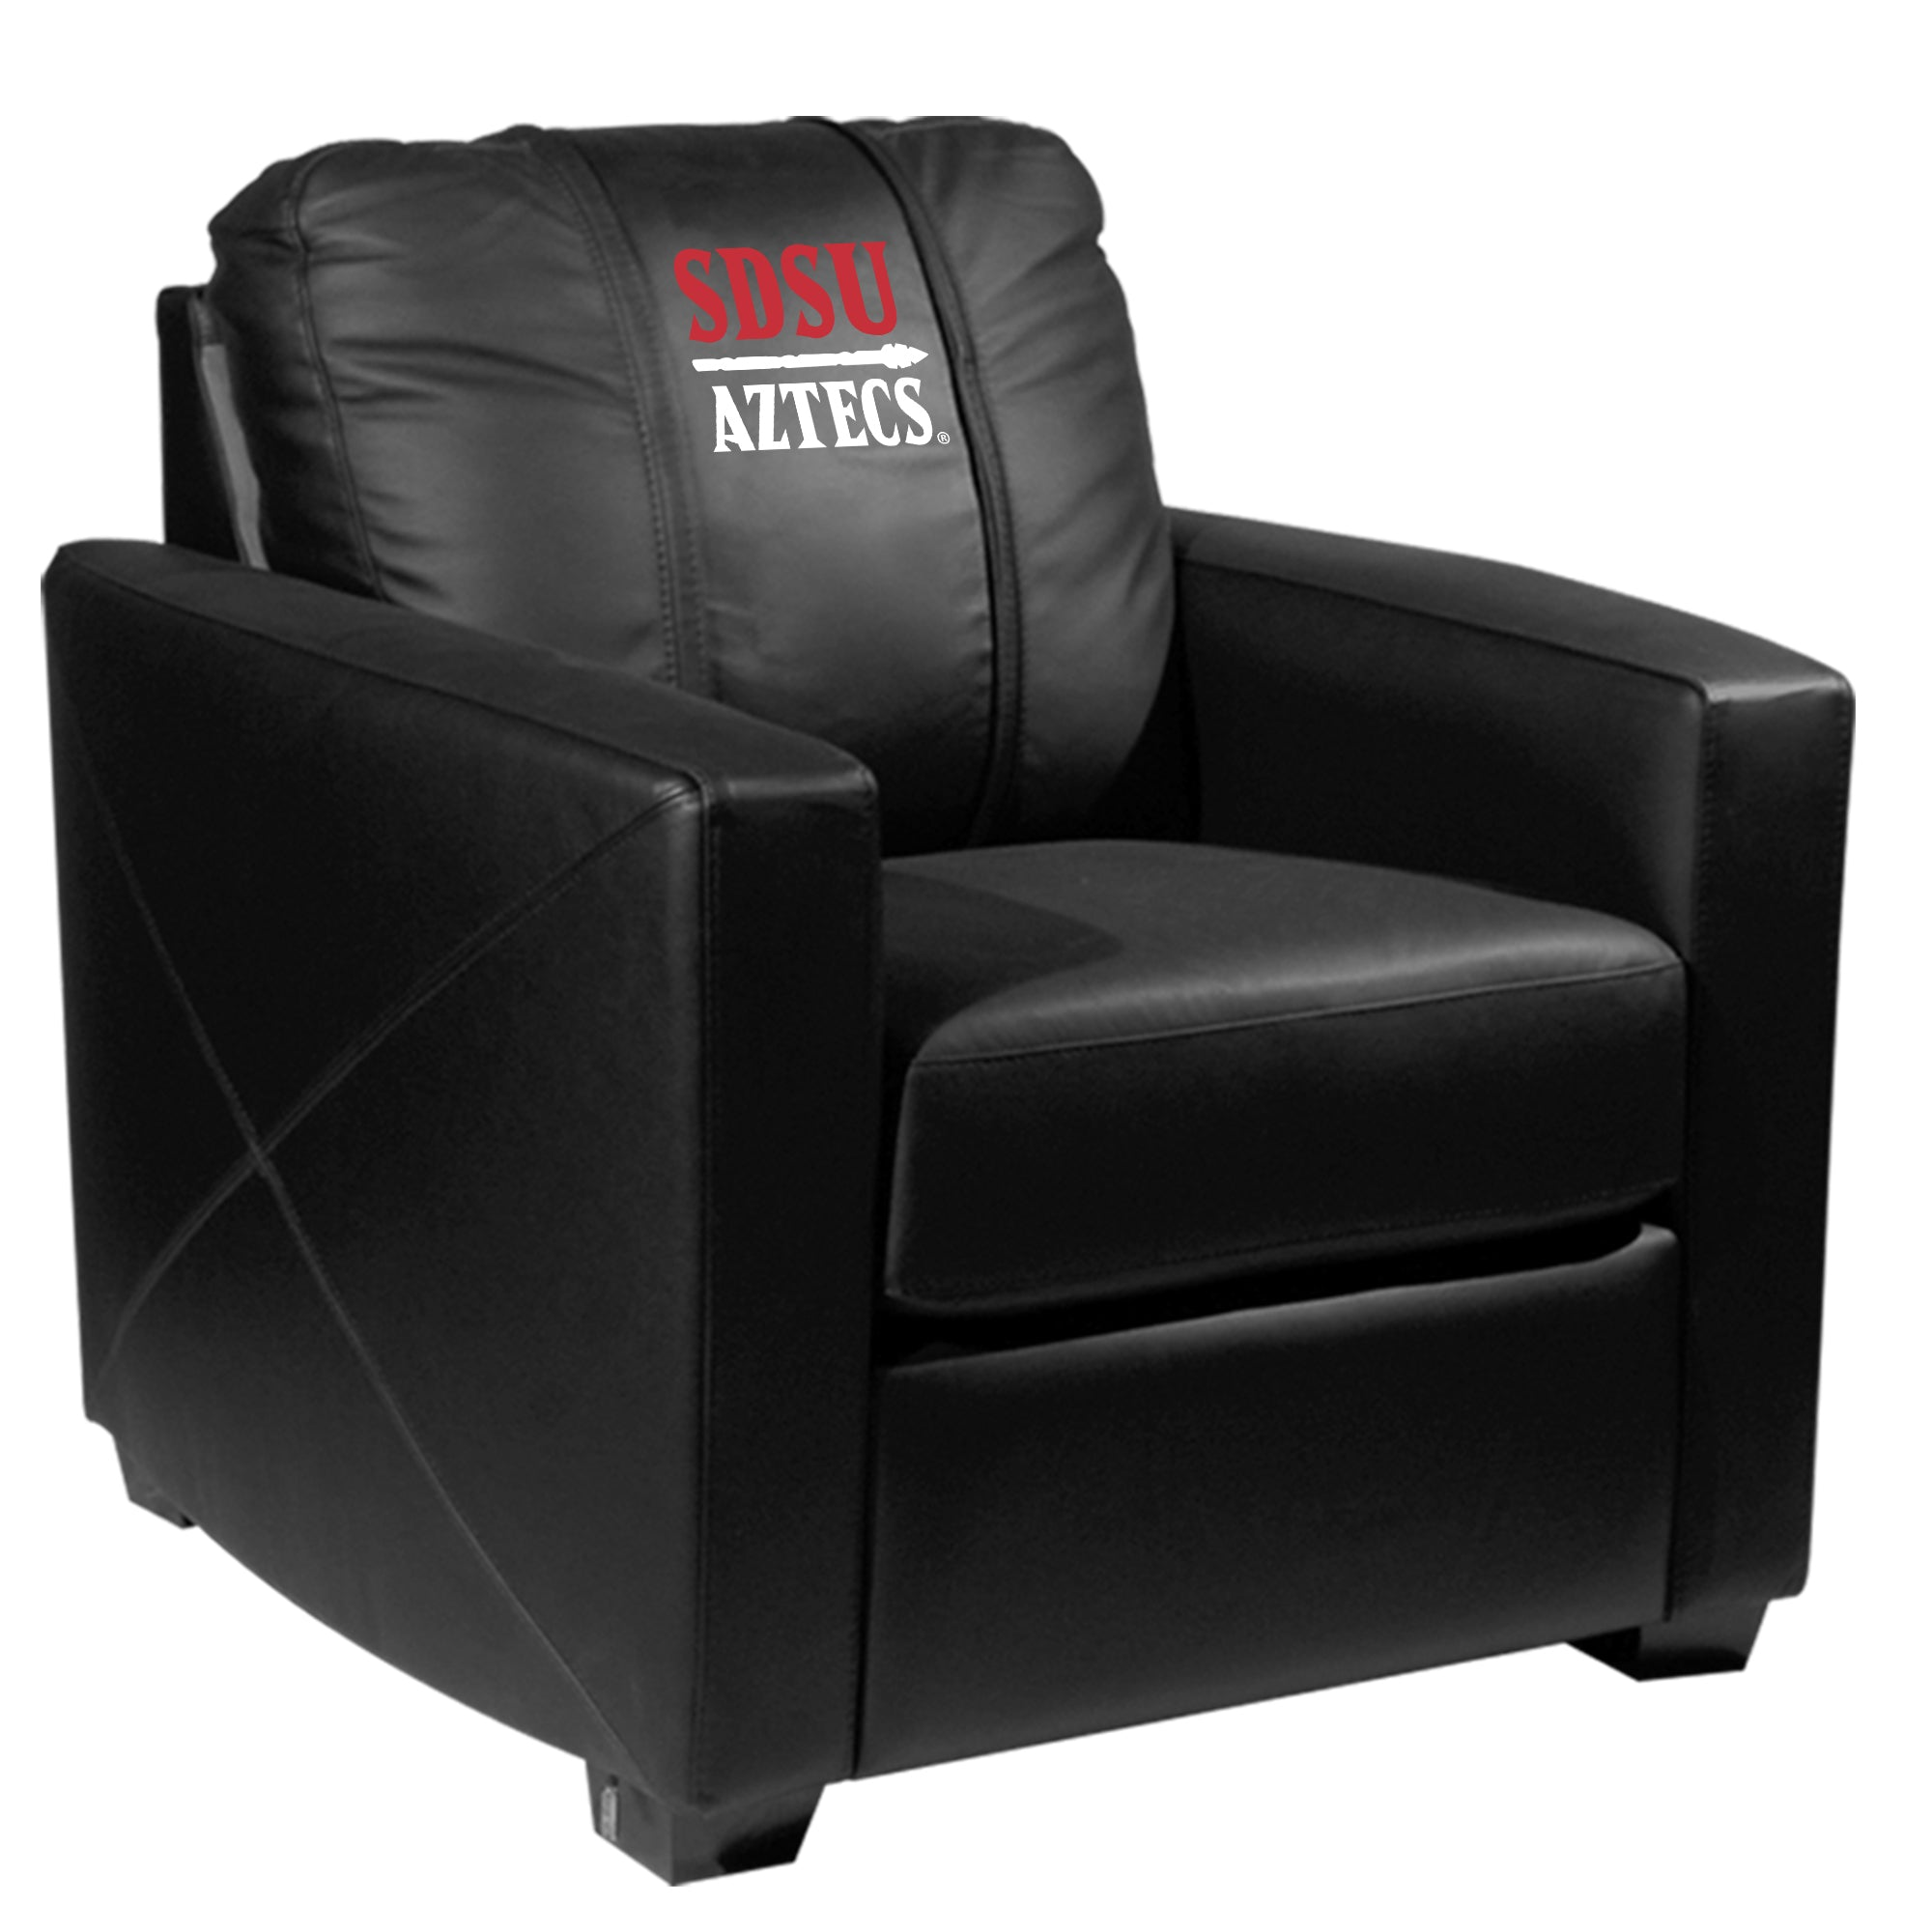 Silver Club Chair with San Diego State Secondary